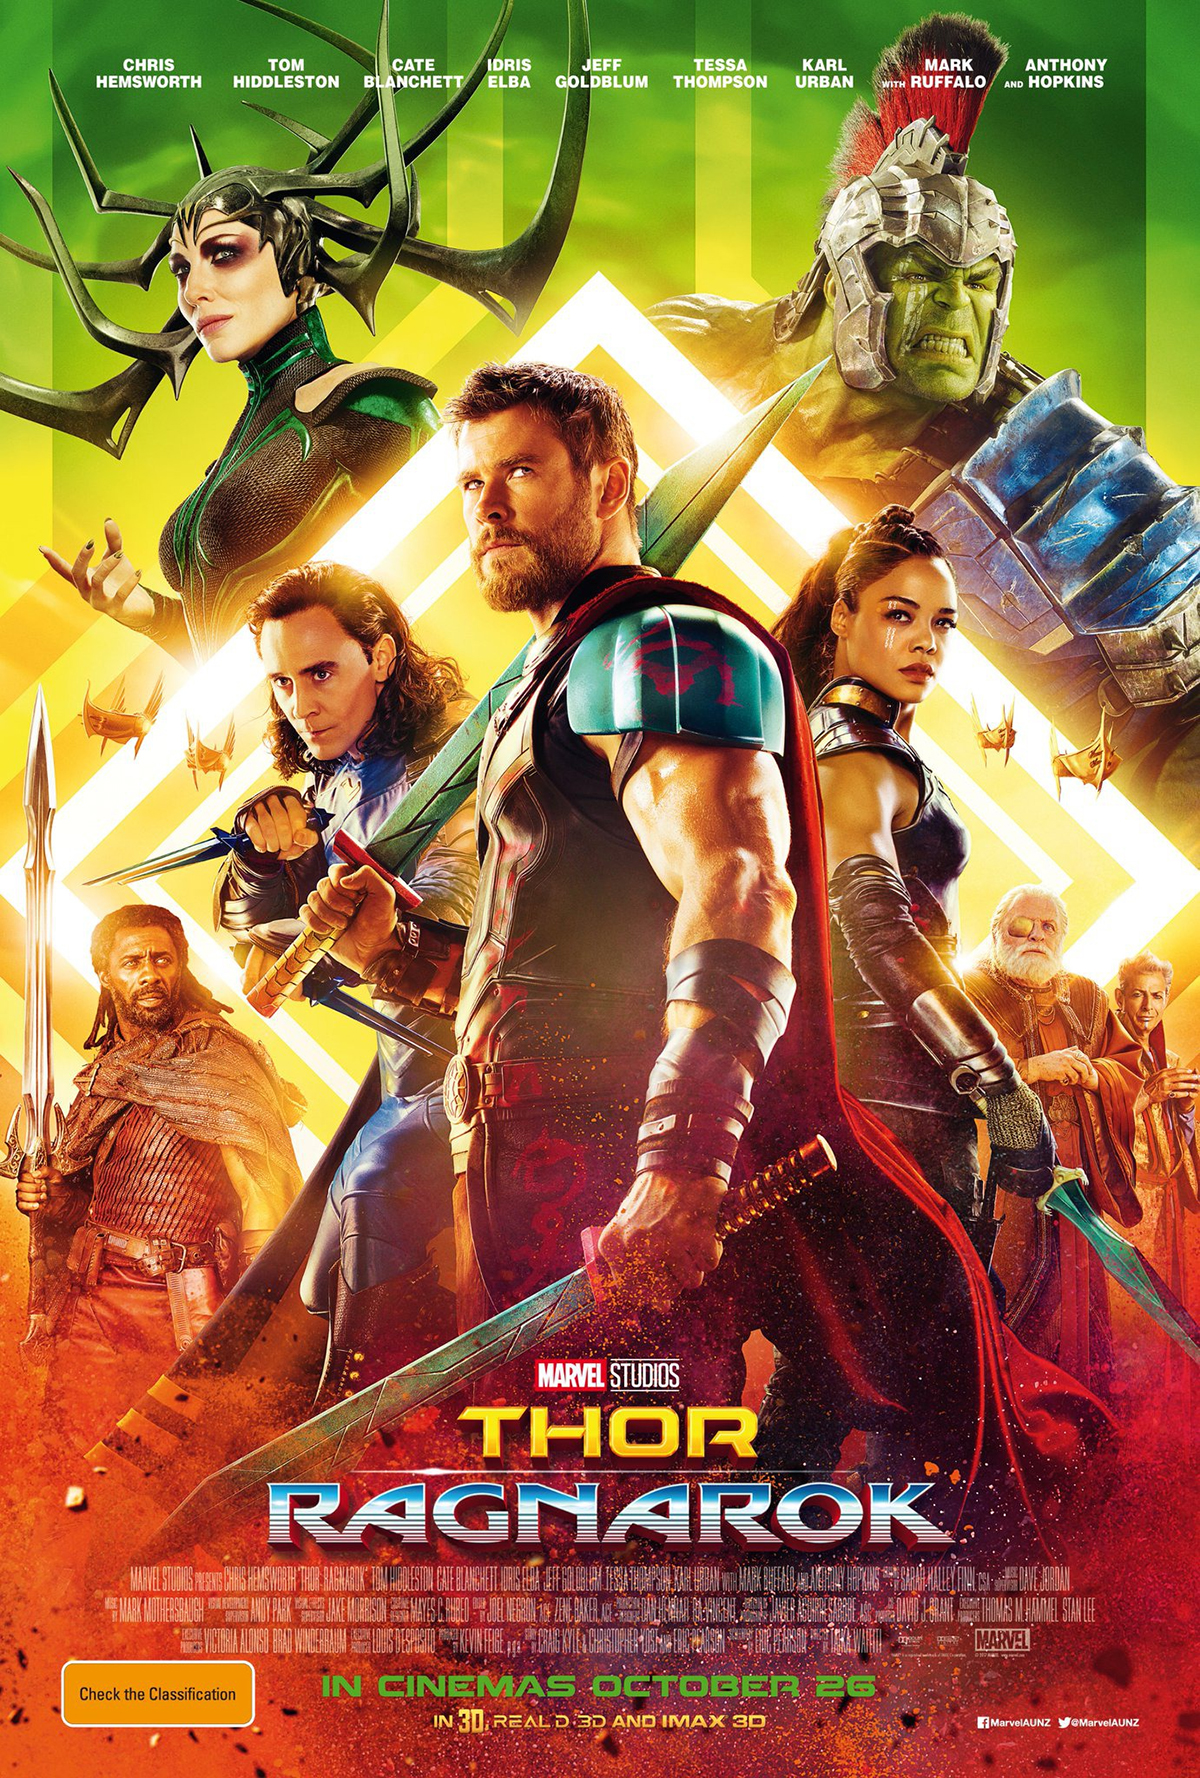 Thor-Ragnarok-international-poster-1-large